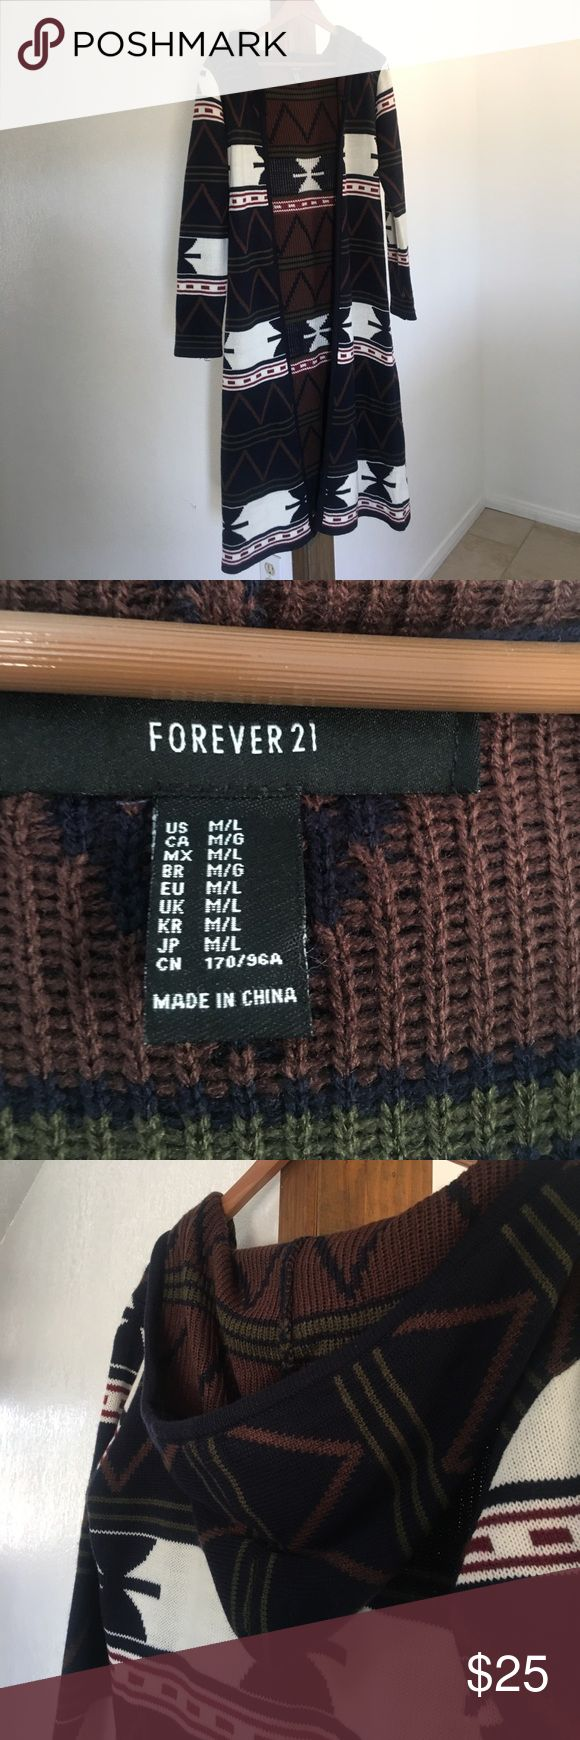 Long cardigan Forever 21 long cardigan size M/L-reposhed I never wore it. Cheaper on ♈️inted Forever 21 Sweaters Cardigans